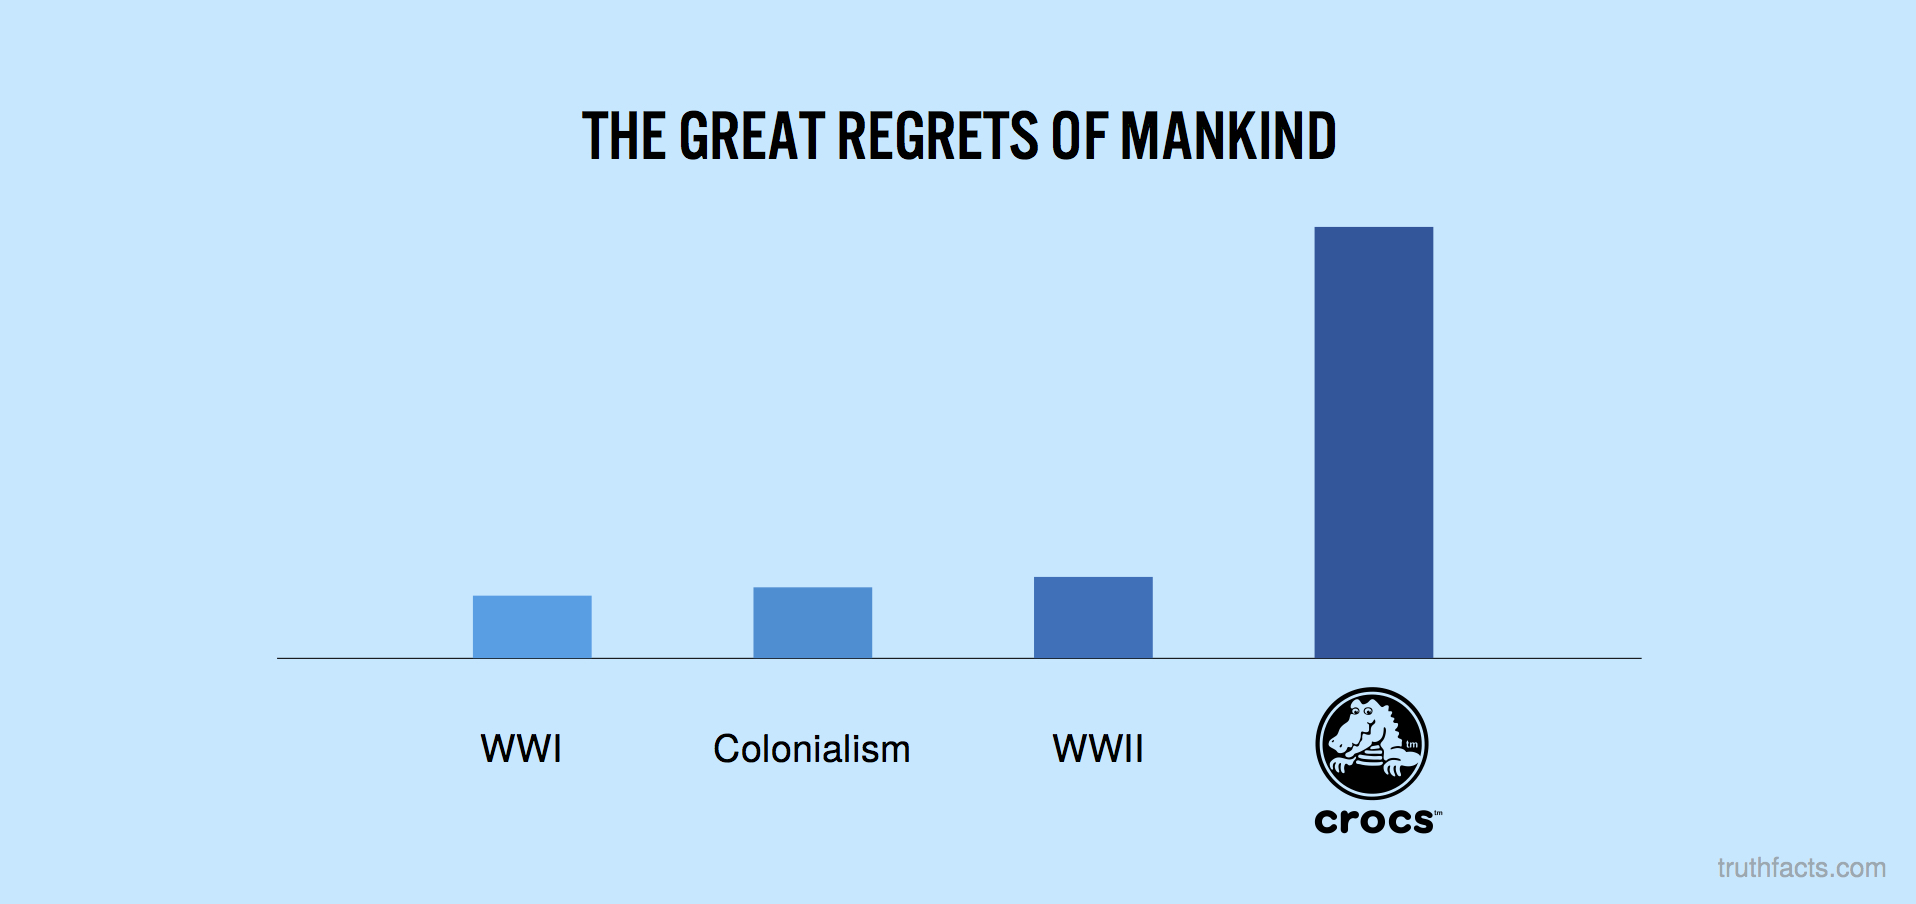 The great regrets of mankind